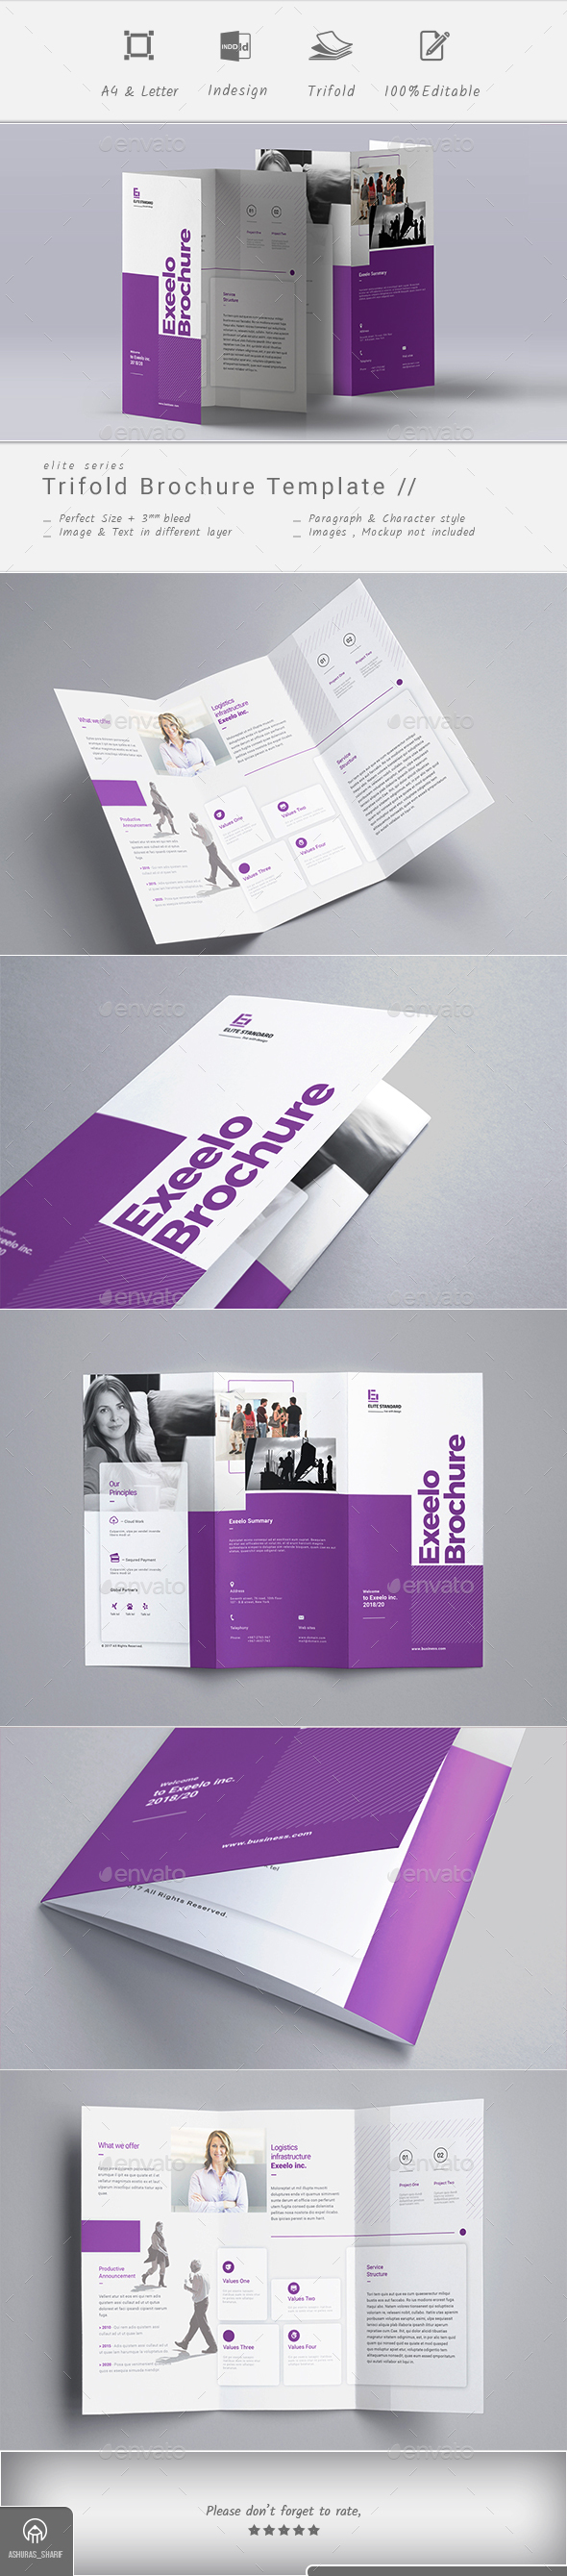 Exeelo Trifold Brochure - Corporate Brochures